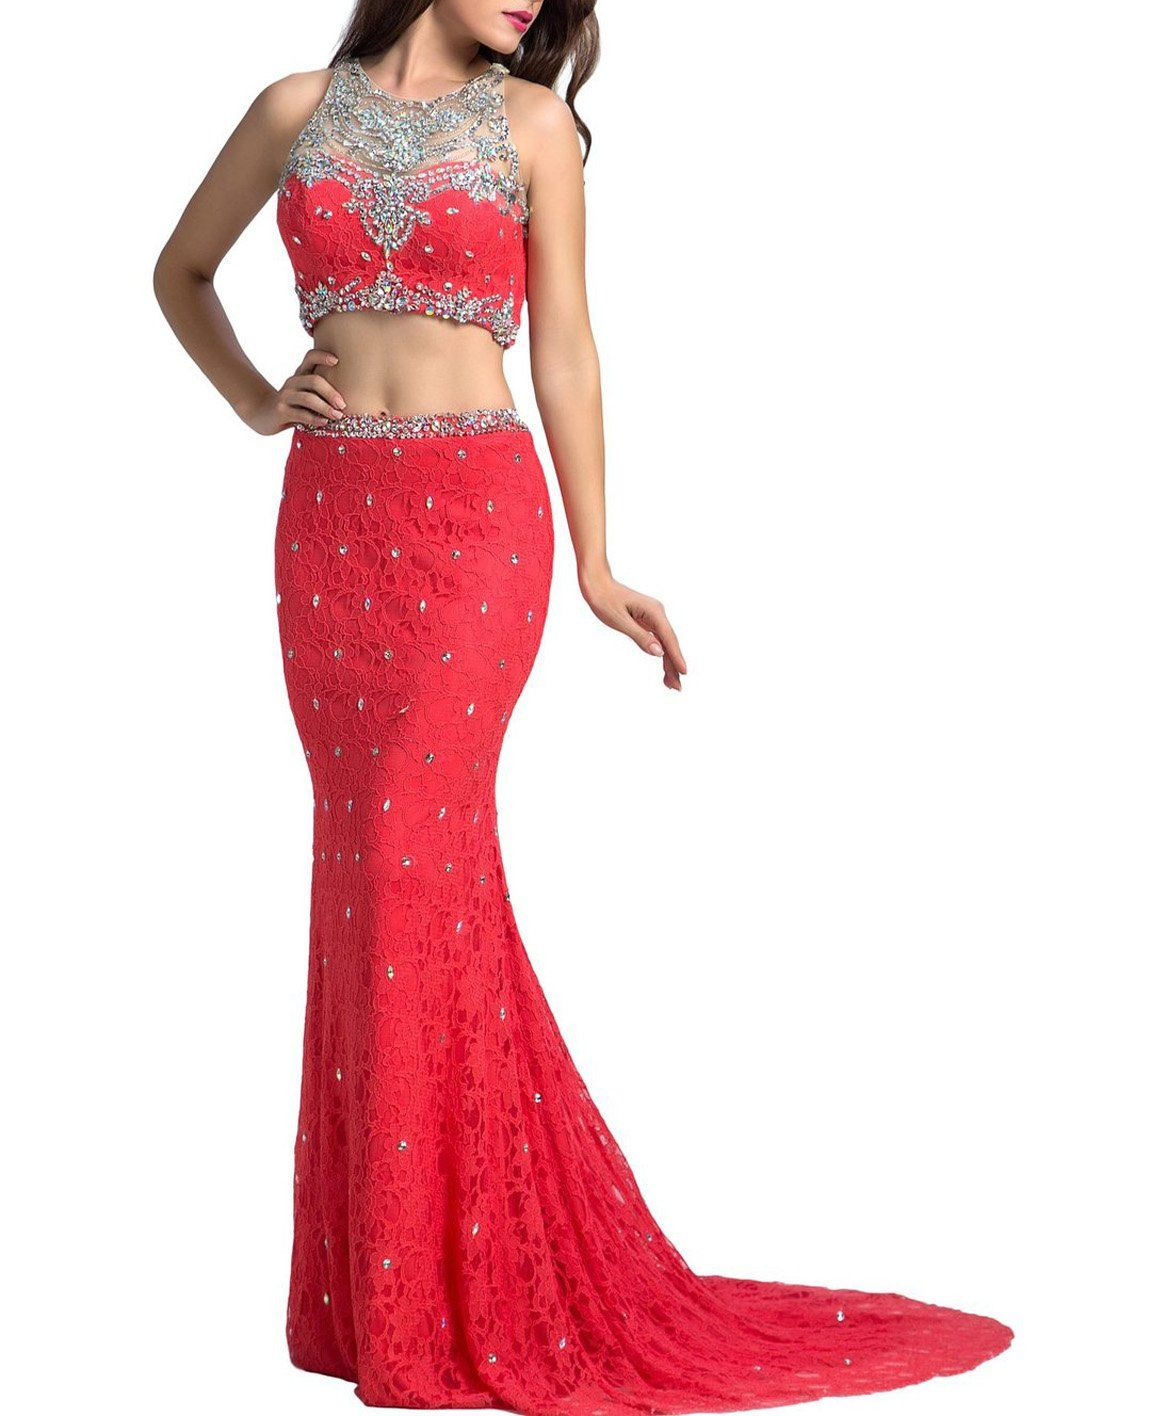 Bessdress beaded two piece lace prom dress long mermaid formal